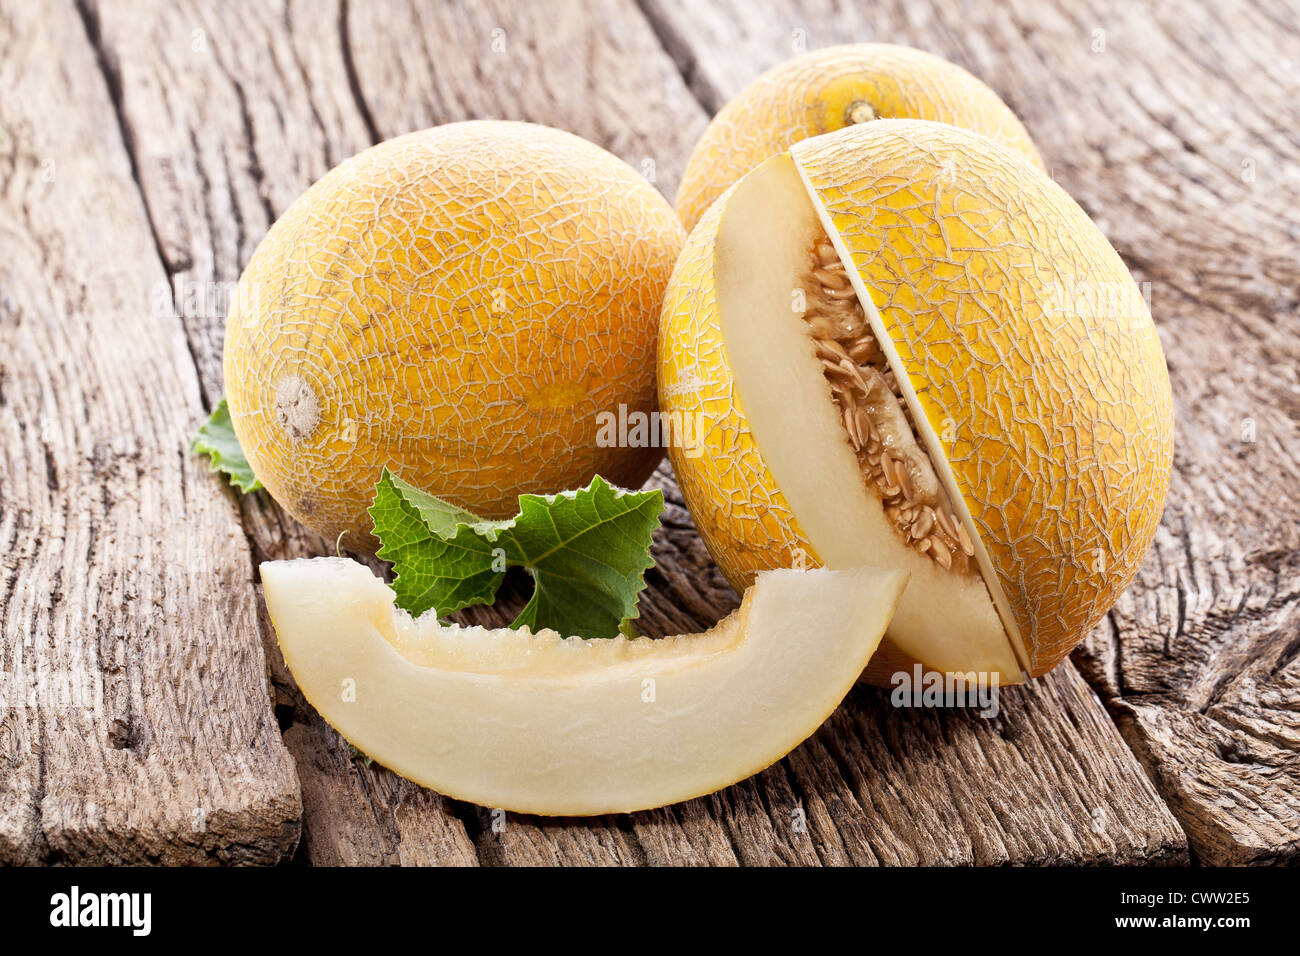 Melon With Slices And Leaves On A Old Wooden Table Stock Photo